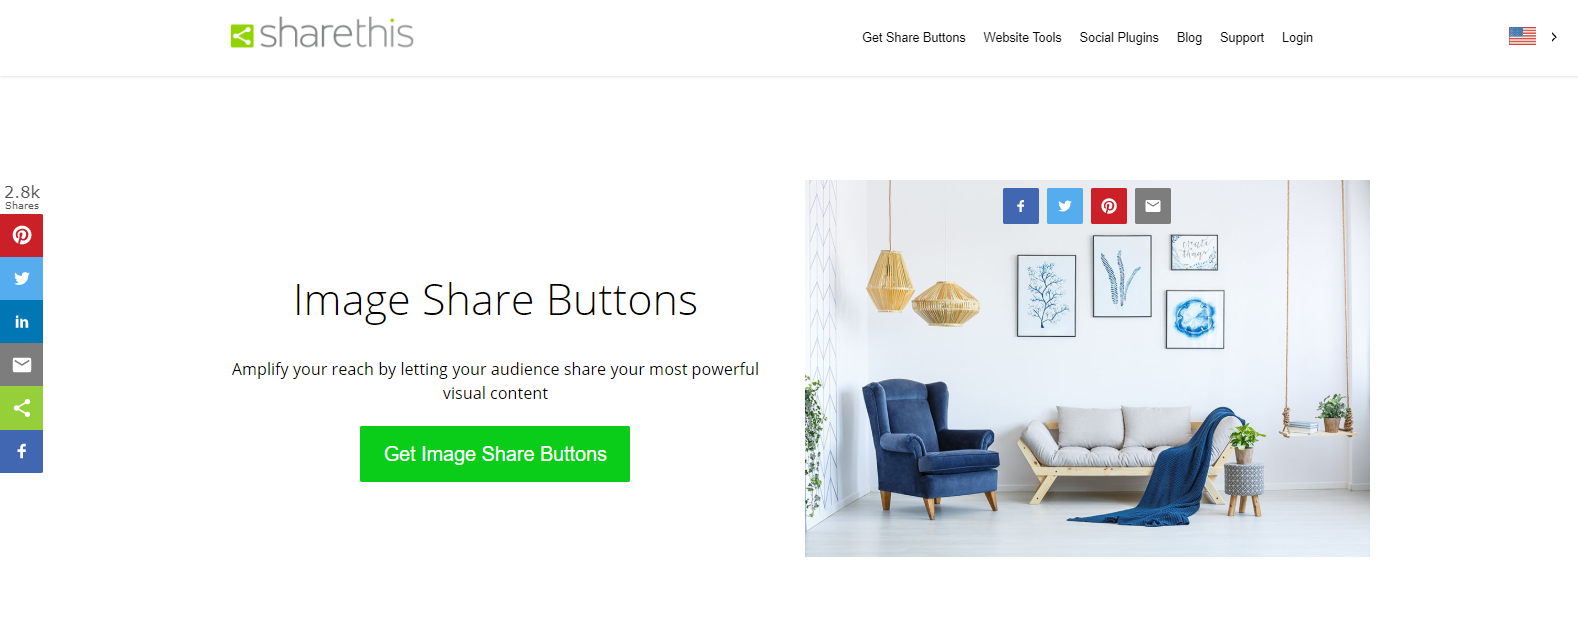 Image Share Buttons